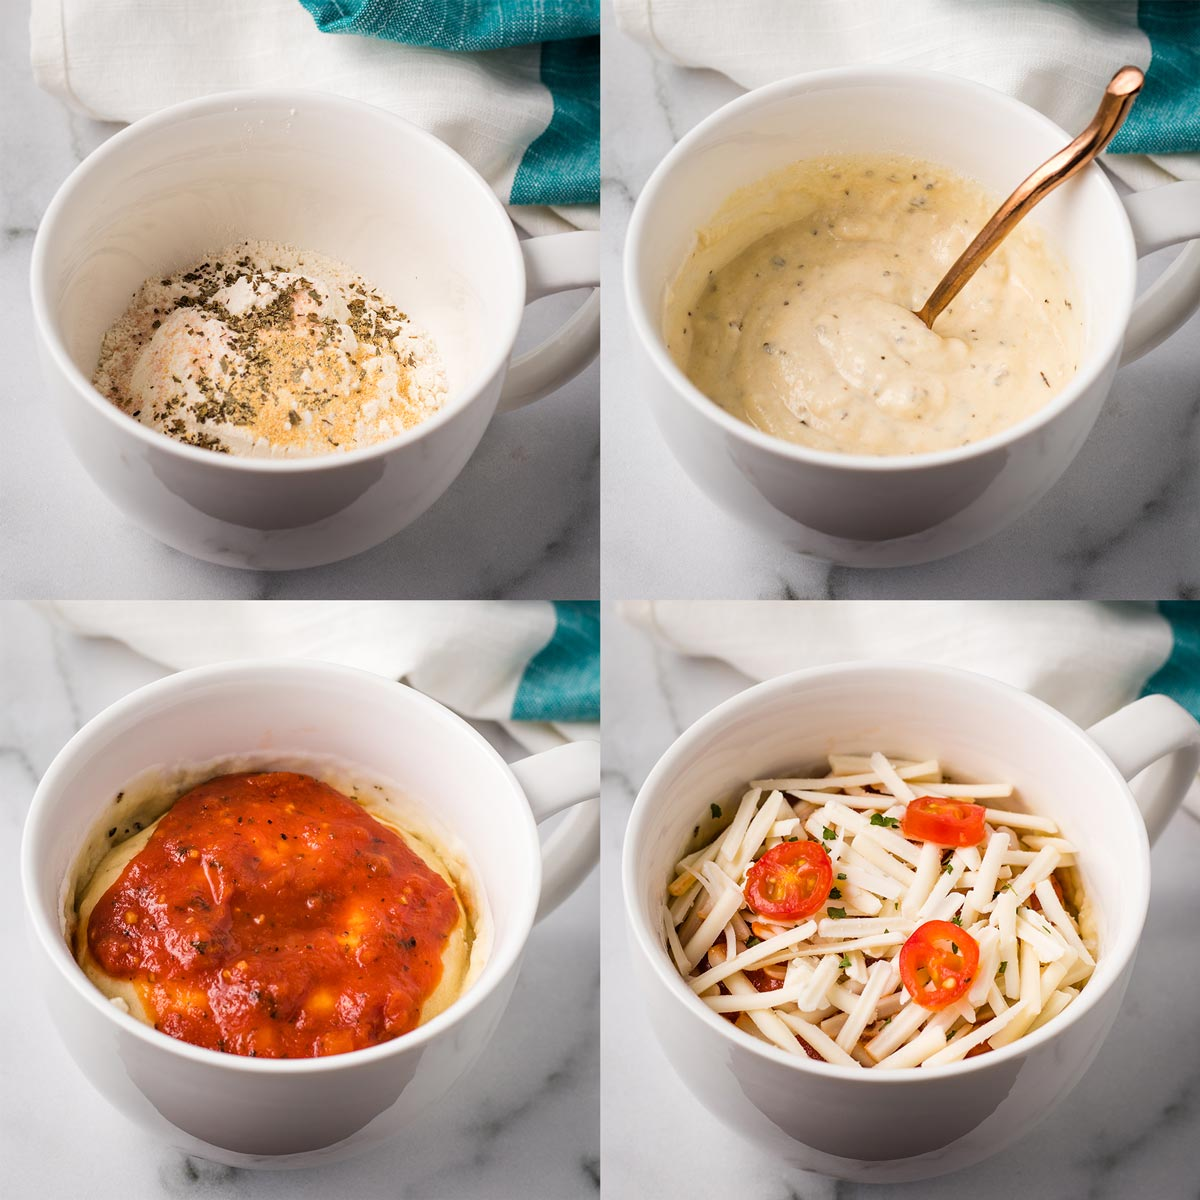 A collage of 4 images, showing the steps to make vegan mug pizza.